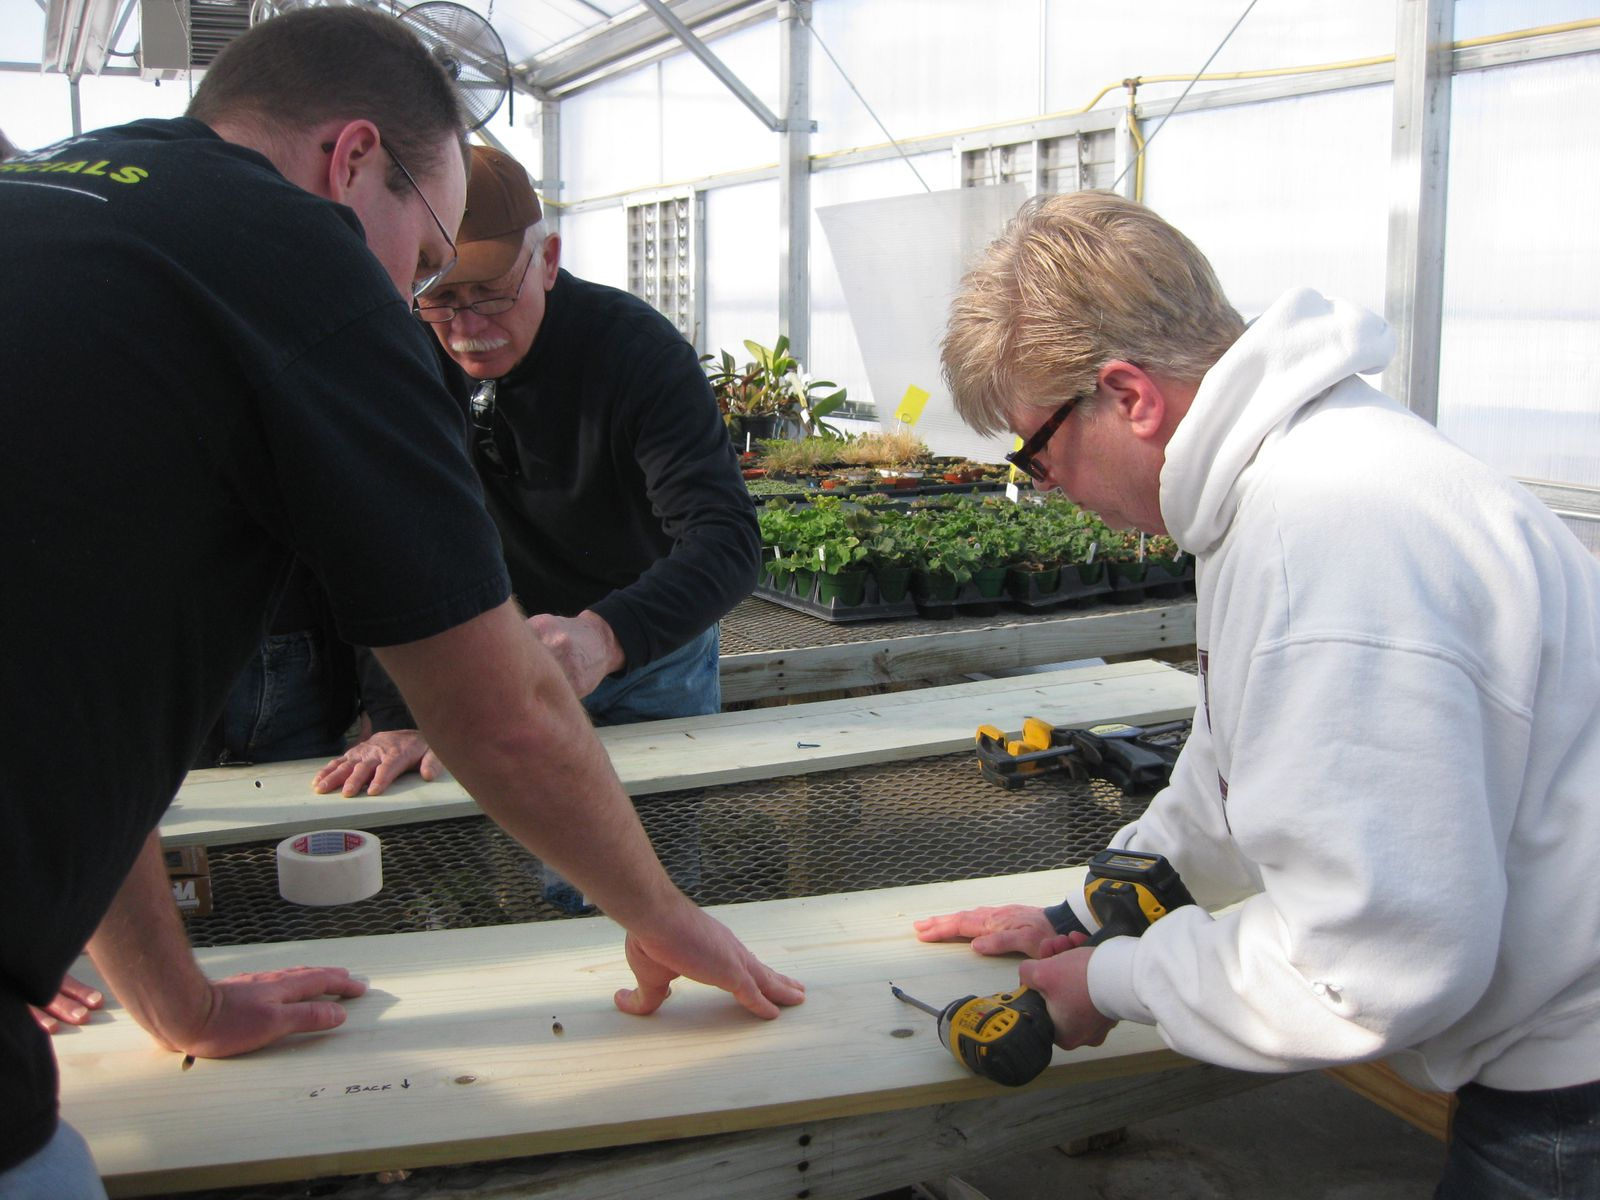 Assembling the front support of the cold frame.